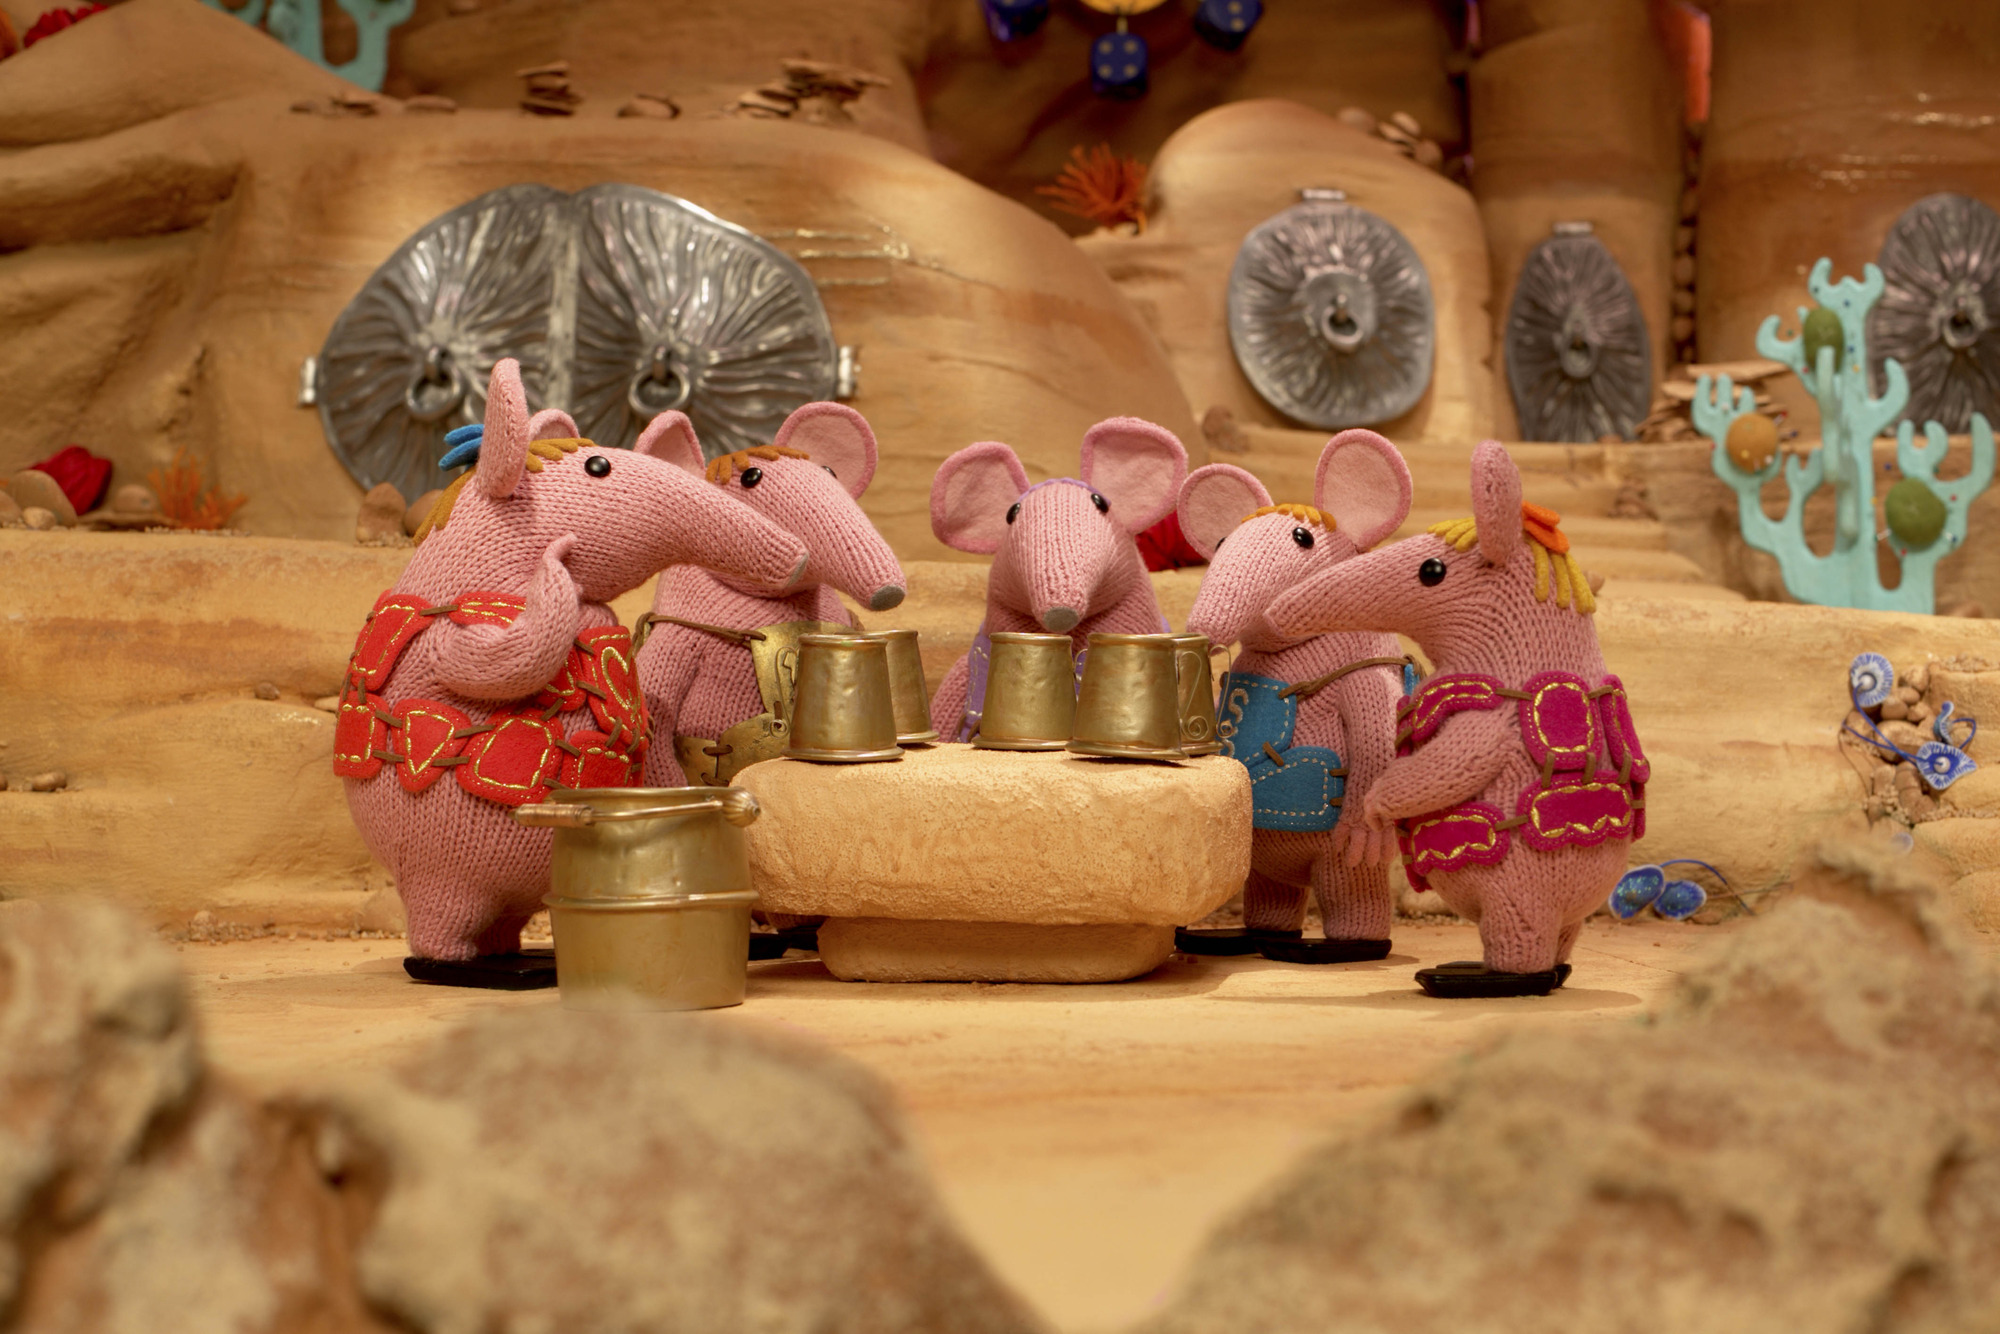 Small and Tiny tell the other Clangers about the Soup Dragon being grumpy.  - (C) Coolabi, Smallfilms and Peter Firmin - Photographer: Production